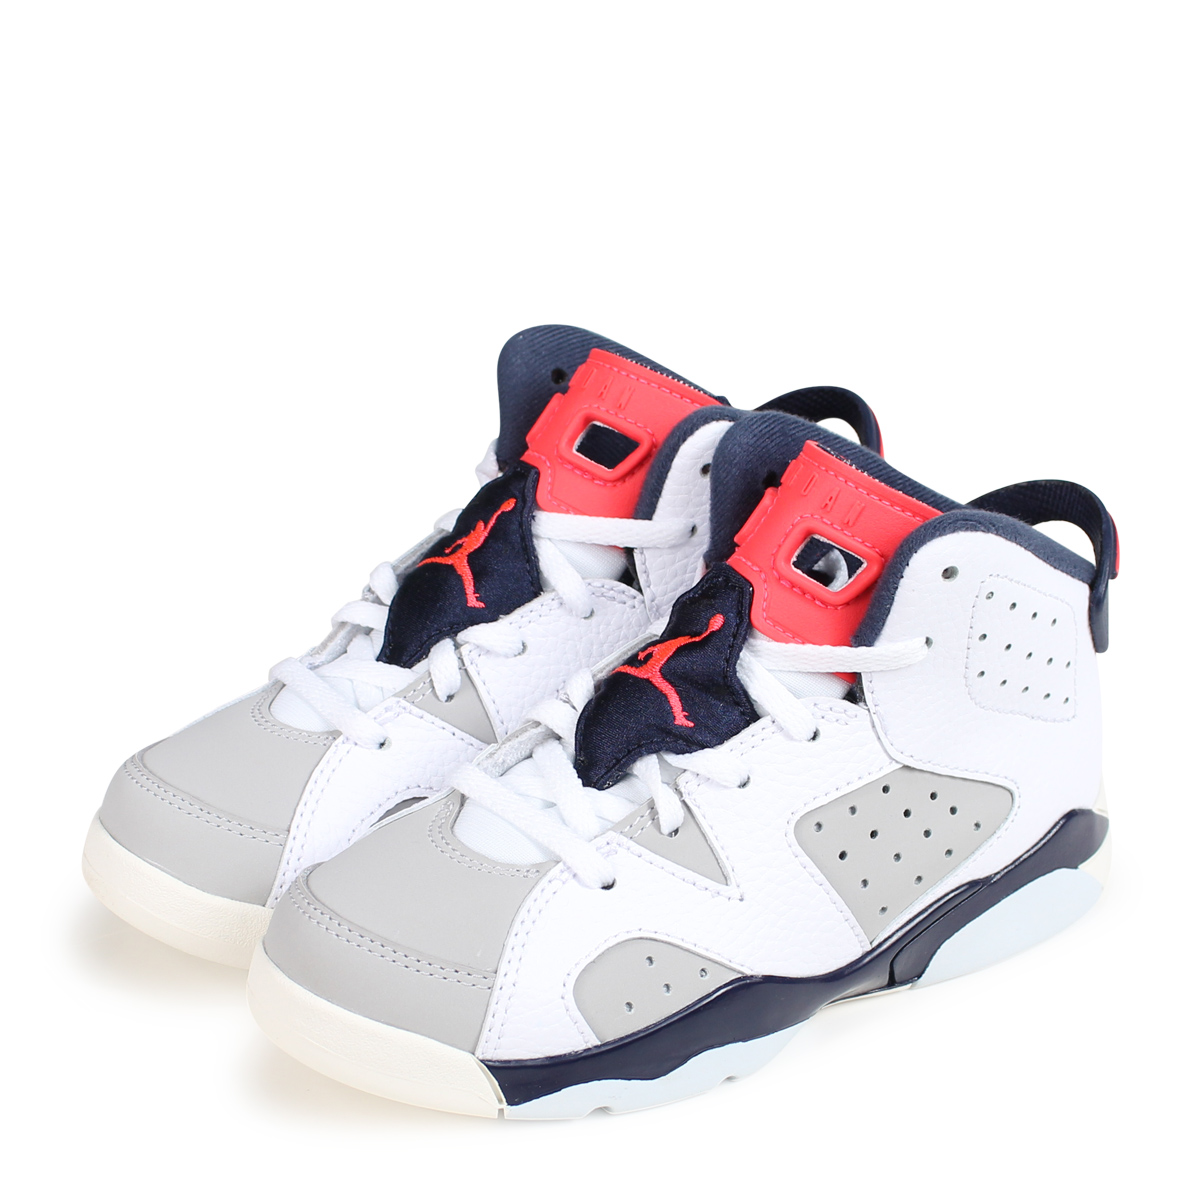 klasyczny styl buty temperamentu sklep NIKE AIR JORDAN 6 RETRO PS TINKER Nike Air Jordan 6 nostalgic kids sneakers  384,666-104 white [load planned Shinnyu load in reservation product 10/22  ...